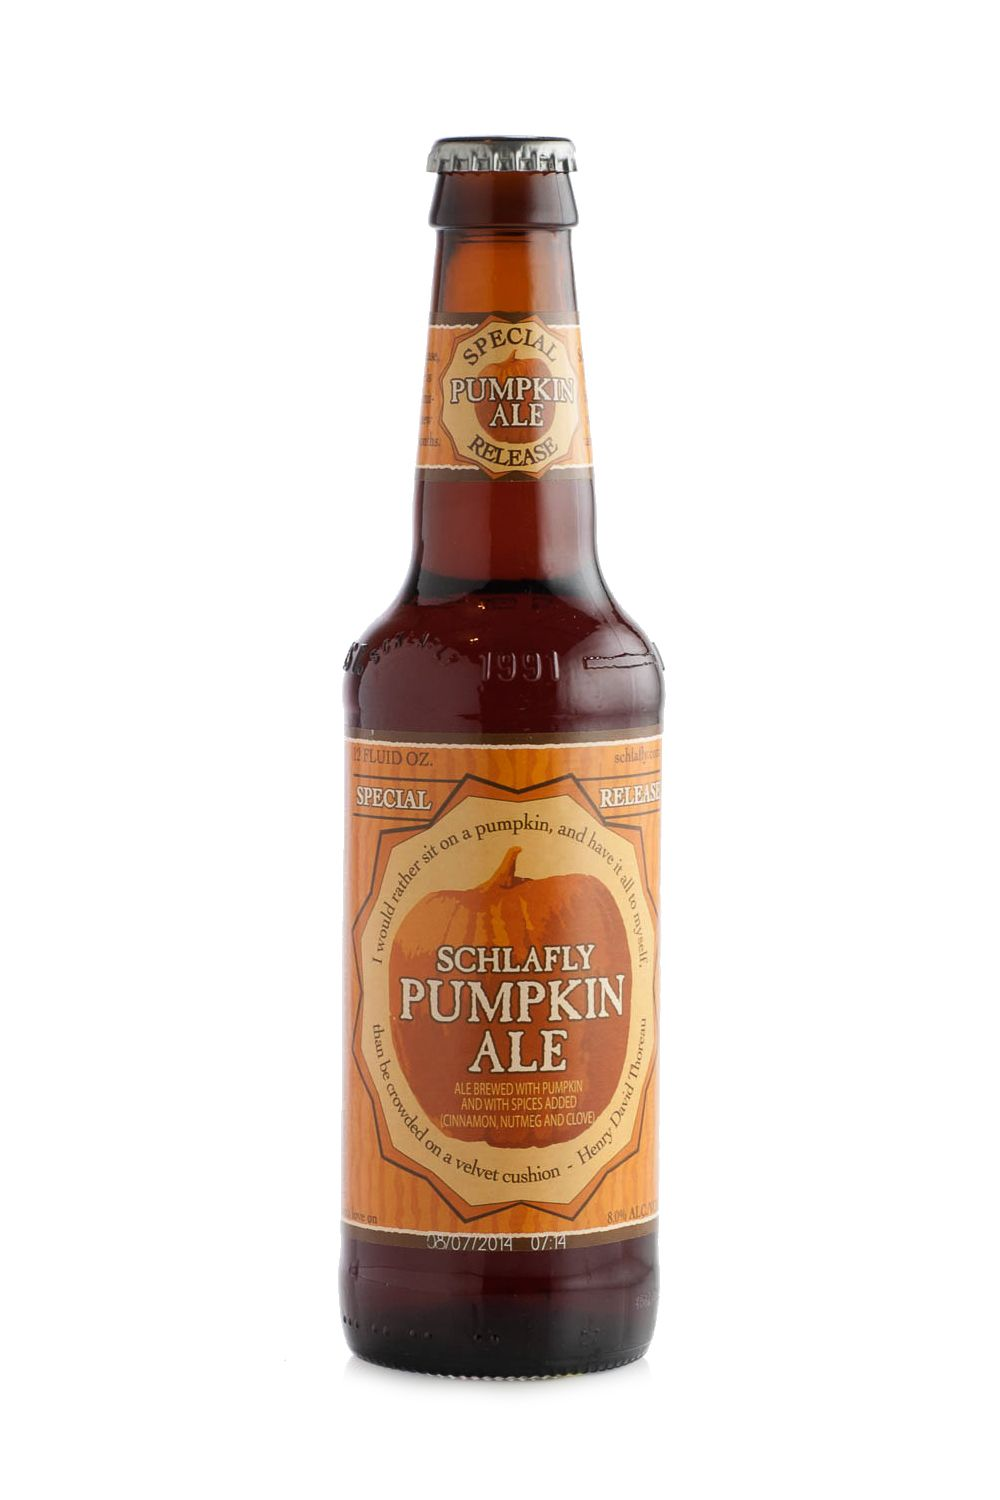 "<p>""If you ask any beverage manager what the most popular pumpkin beer they've sold is, it's very likely they'll say Schlafly Pumpkin. It hits all the right notes for a fall beer: Earthy pumpkin, roasty malt back bone, and spicy cinnamon, nutmeg, and clove all come together in just the right amounts to create a perfectly autumnal palate experience. It's so broadly appealing that I consider it to be a 'gateway pumpkin beer.'<span class=""redactor-invisible-space"" data-verified=""redactor"" data-redactor-tag=""span"" data-redactor-class=""redactor-invisible-space"">""</span></p>"